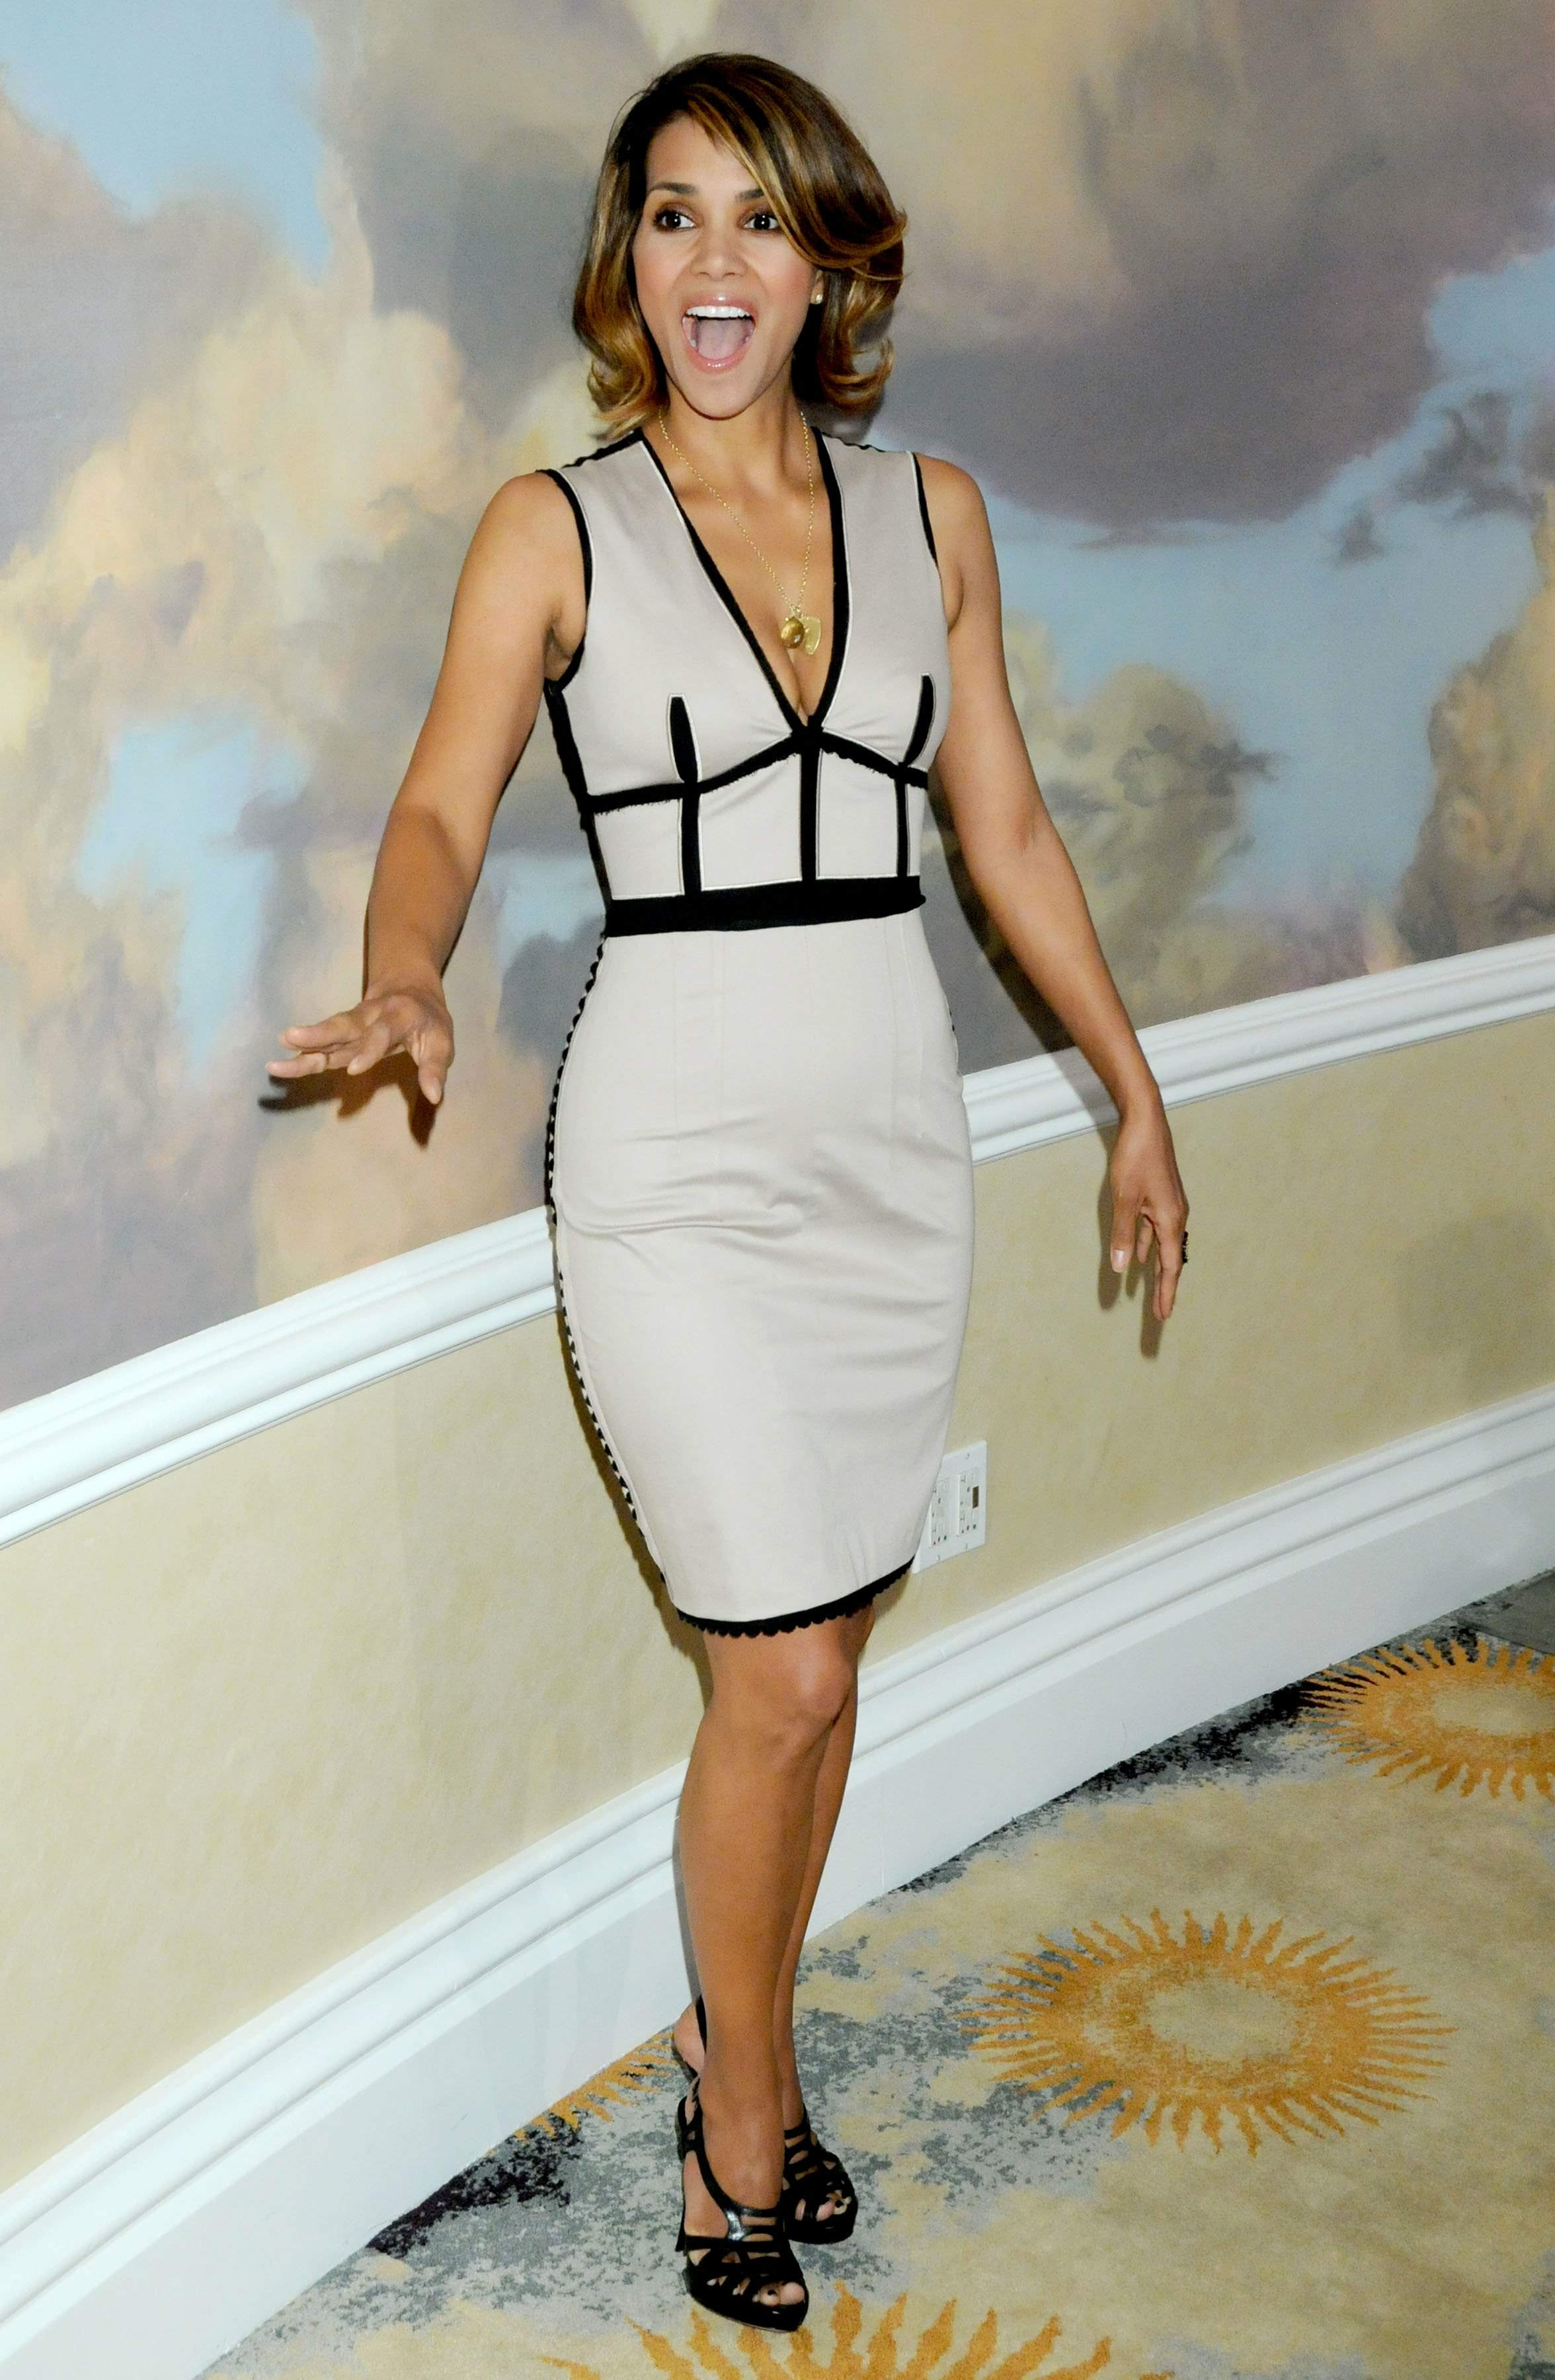 62098_Halle_Berry_2009_Jenesse_Silver_Rose_Gala_Auction_in_Beverly_Hills_13_122_133lo.jpg